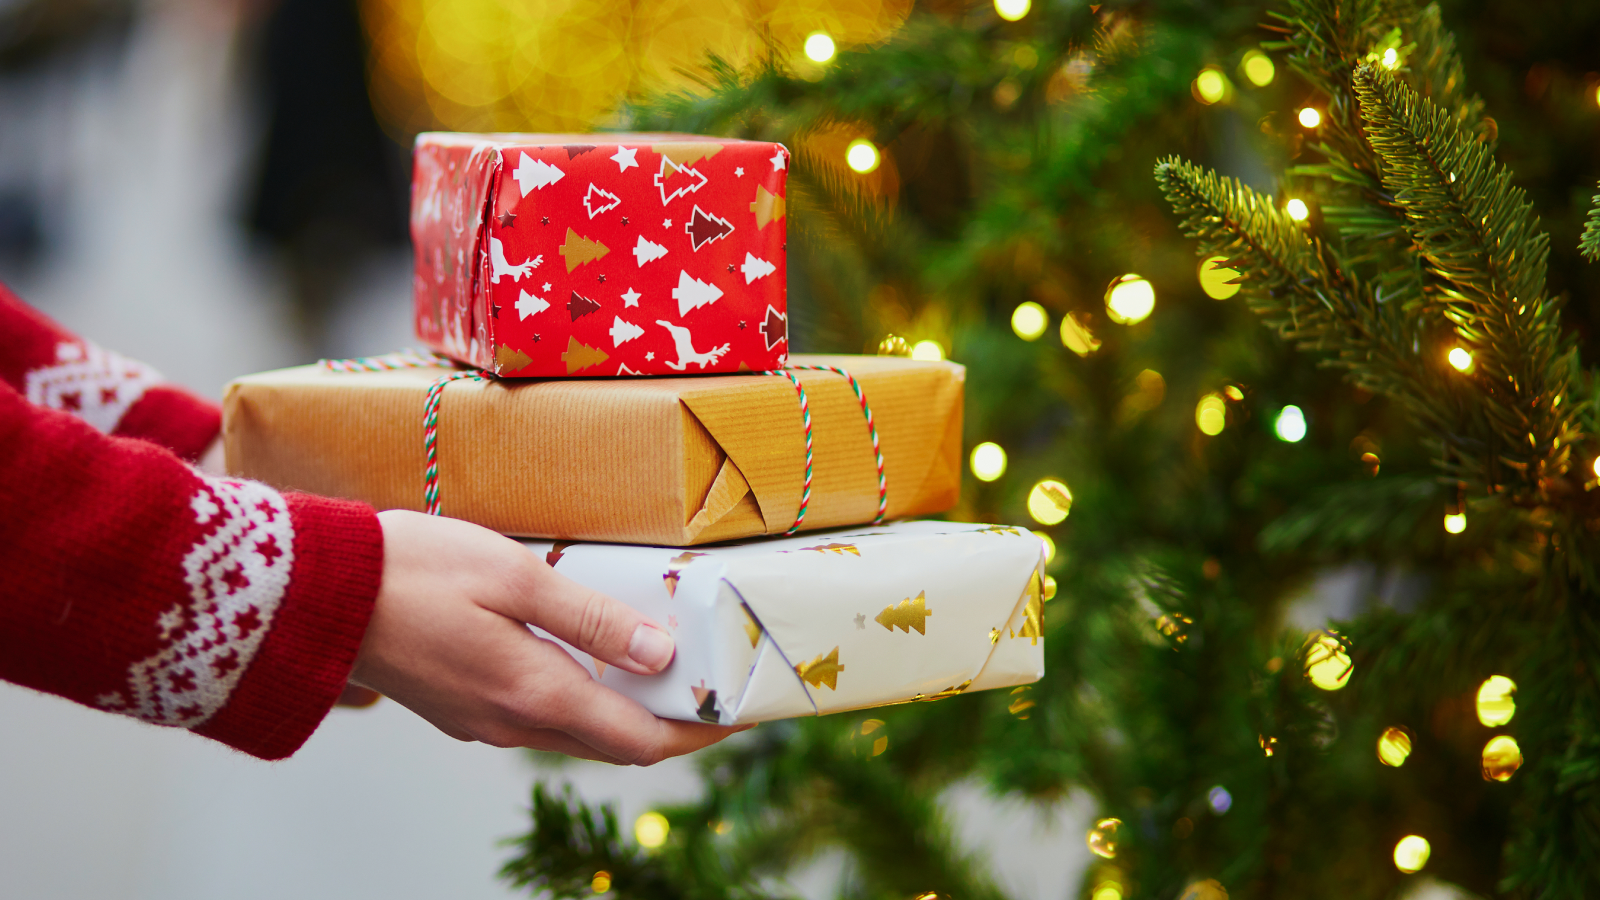 Christmas 2020: Shoppers expected to spend more but COVID-19 remains the wild card